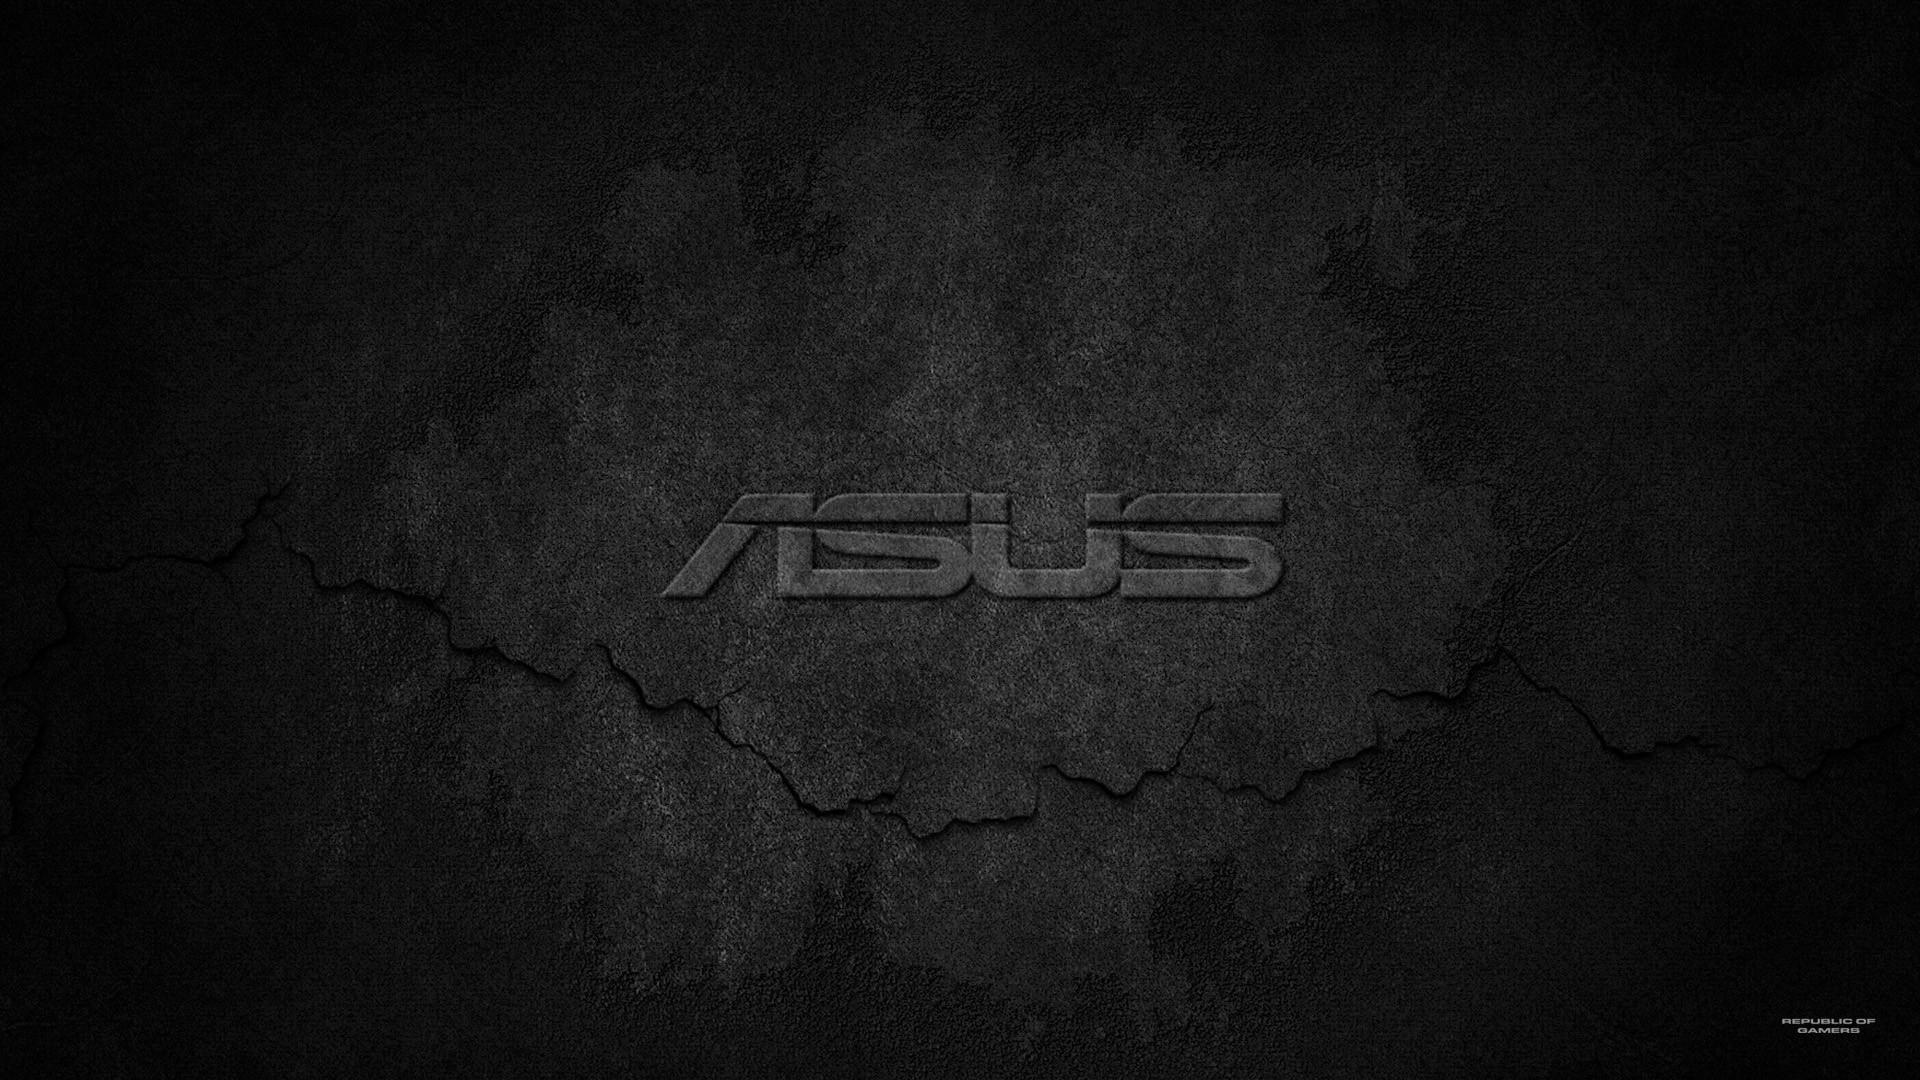 Asus Laptop Wallpaper Free Download Best Hd Wallpaper